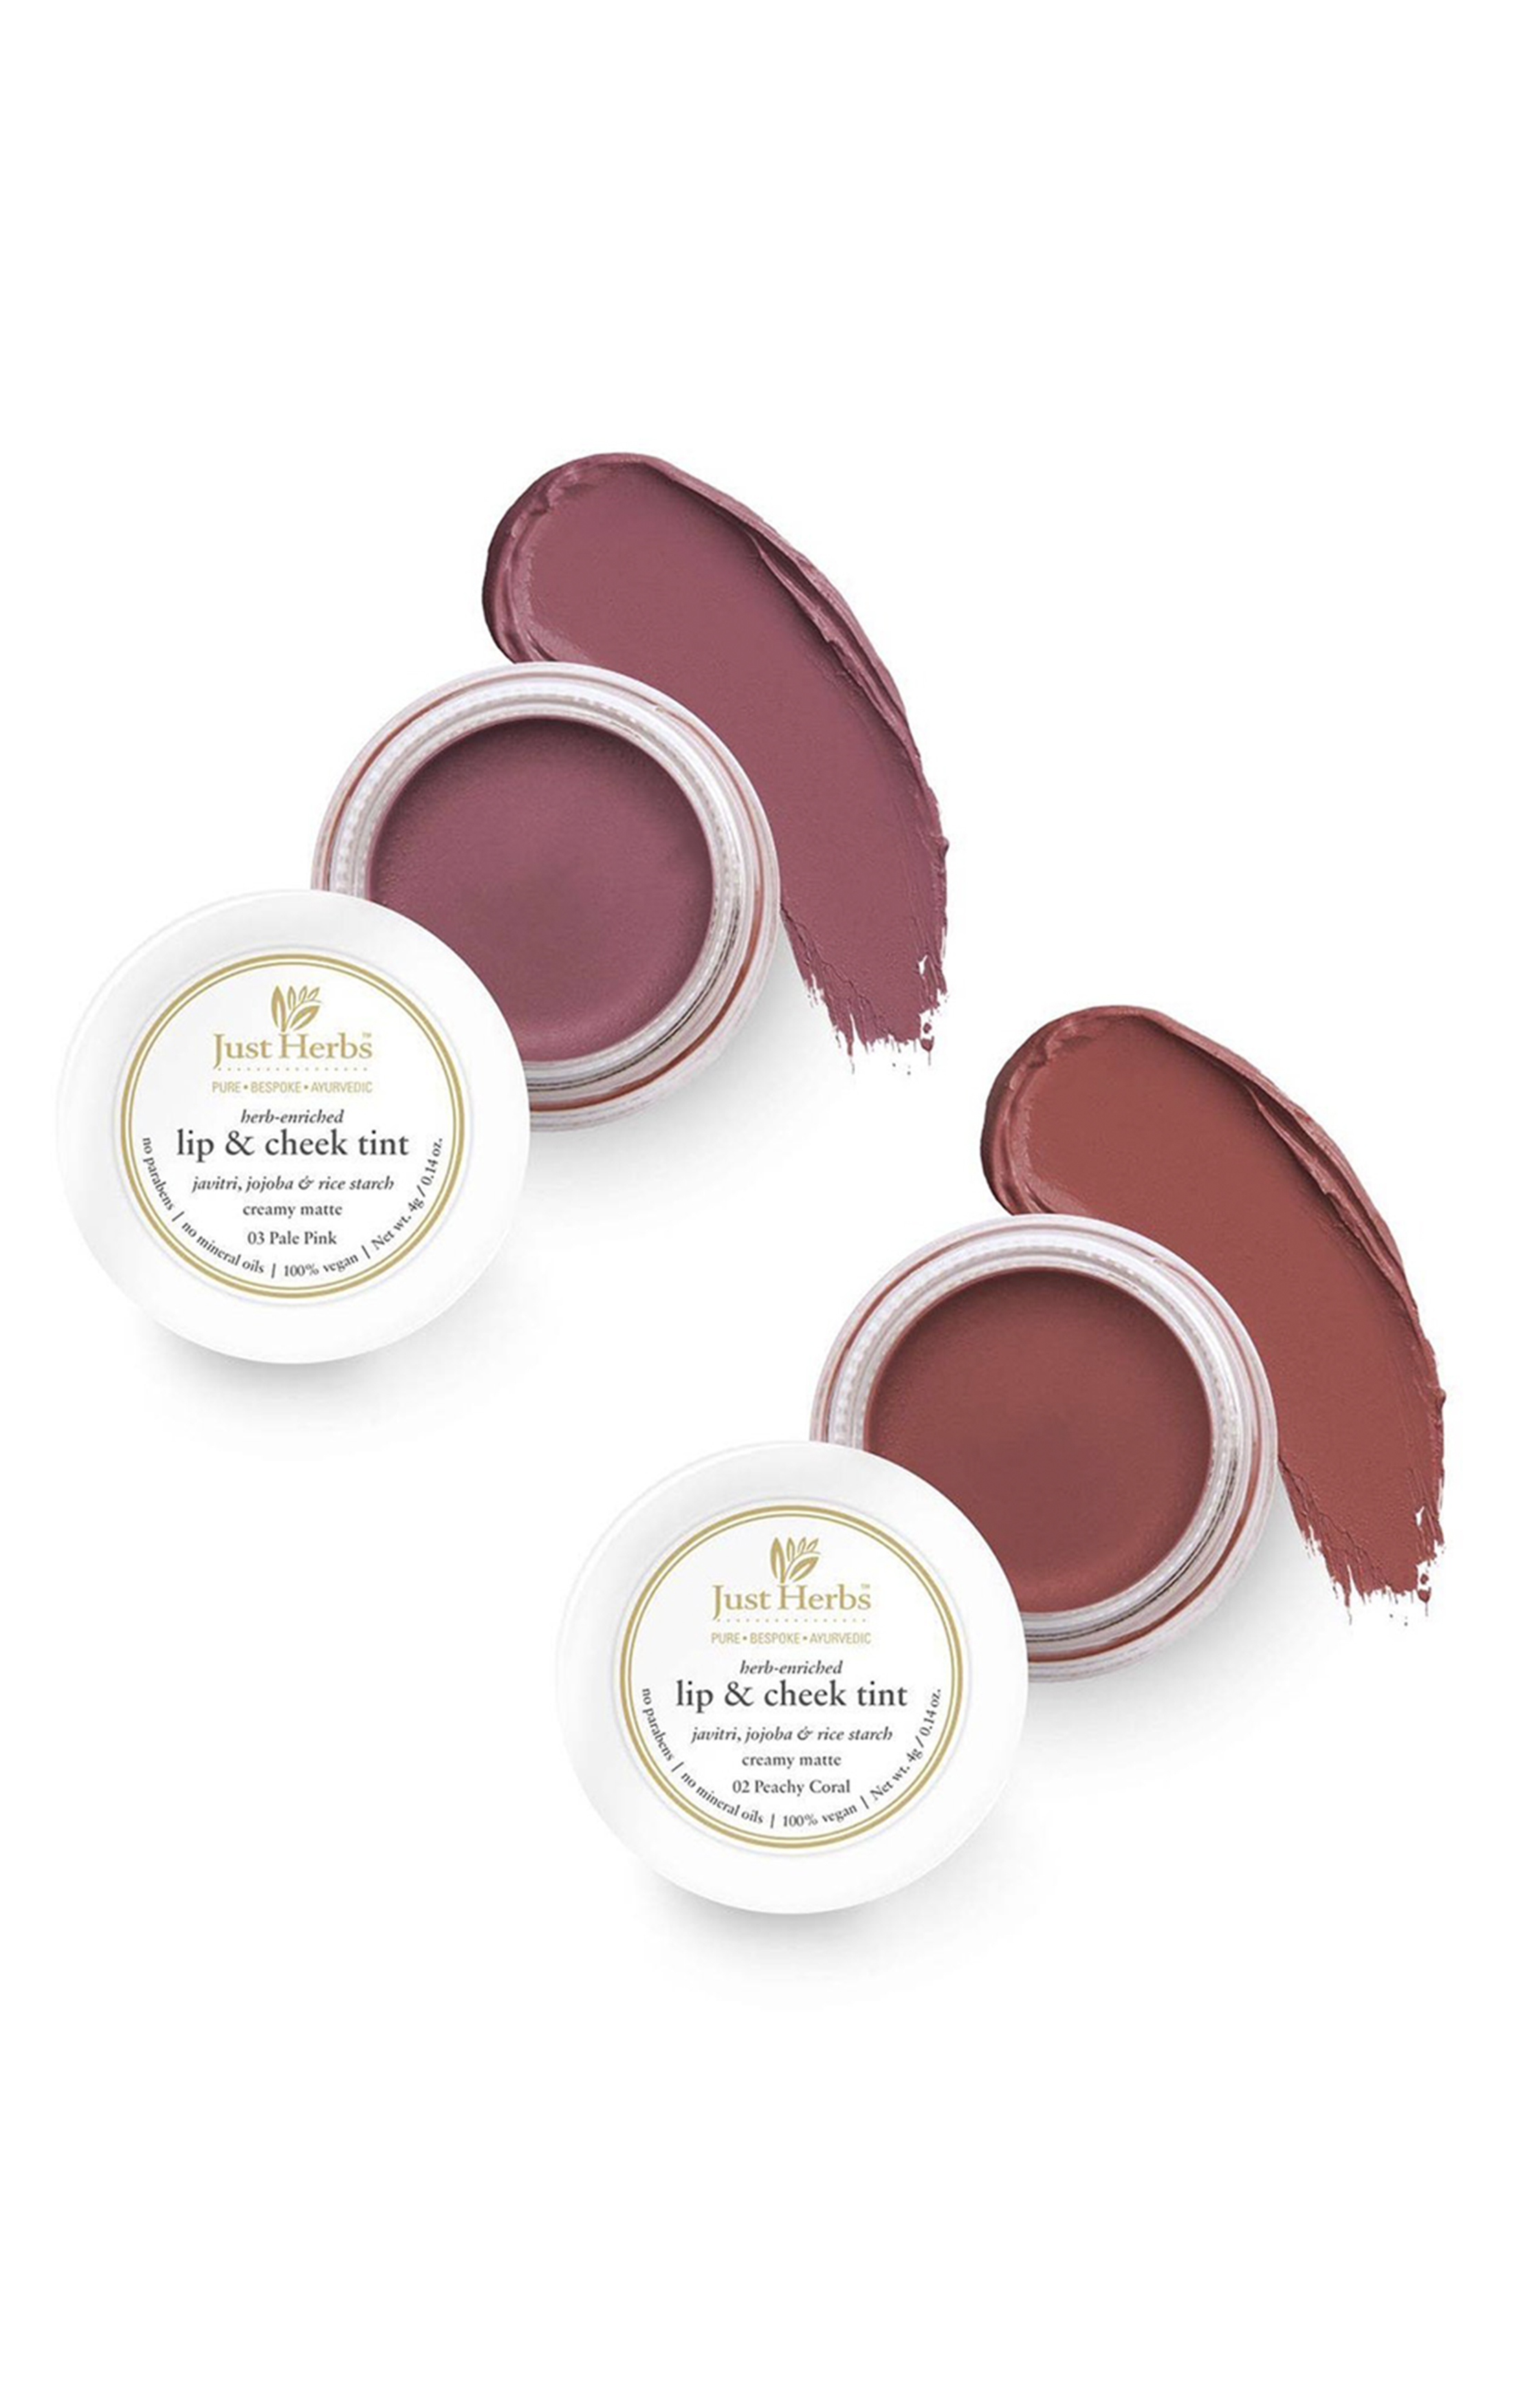 Just Herbs | Just Herbs Vegan Lip and Cheek Tint ( pack of 2) : Subtle Day-Wear Must Haves - Peachy Coral and Pale Pink